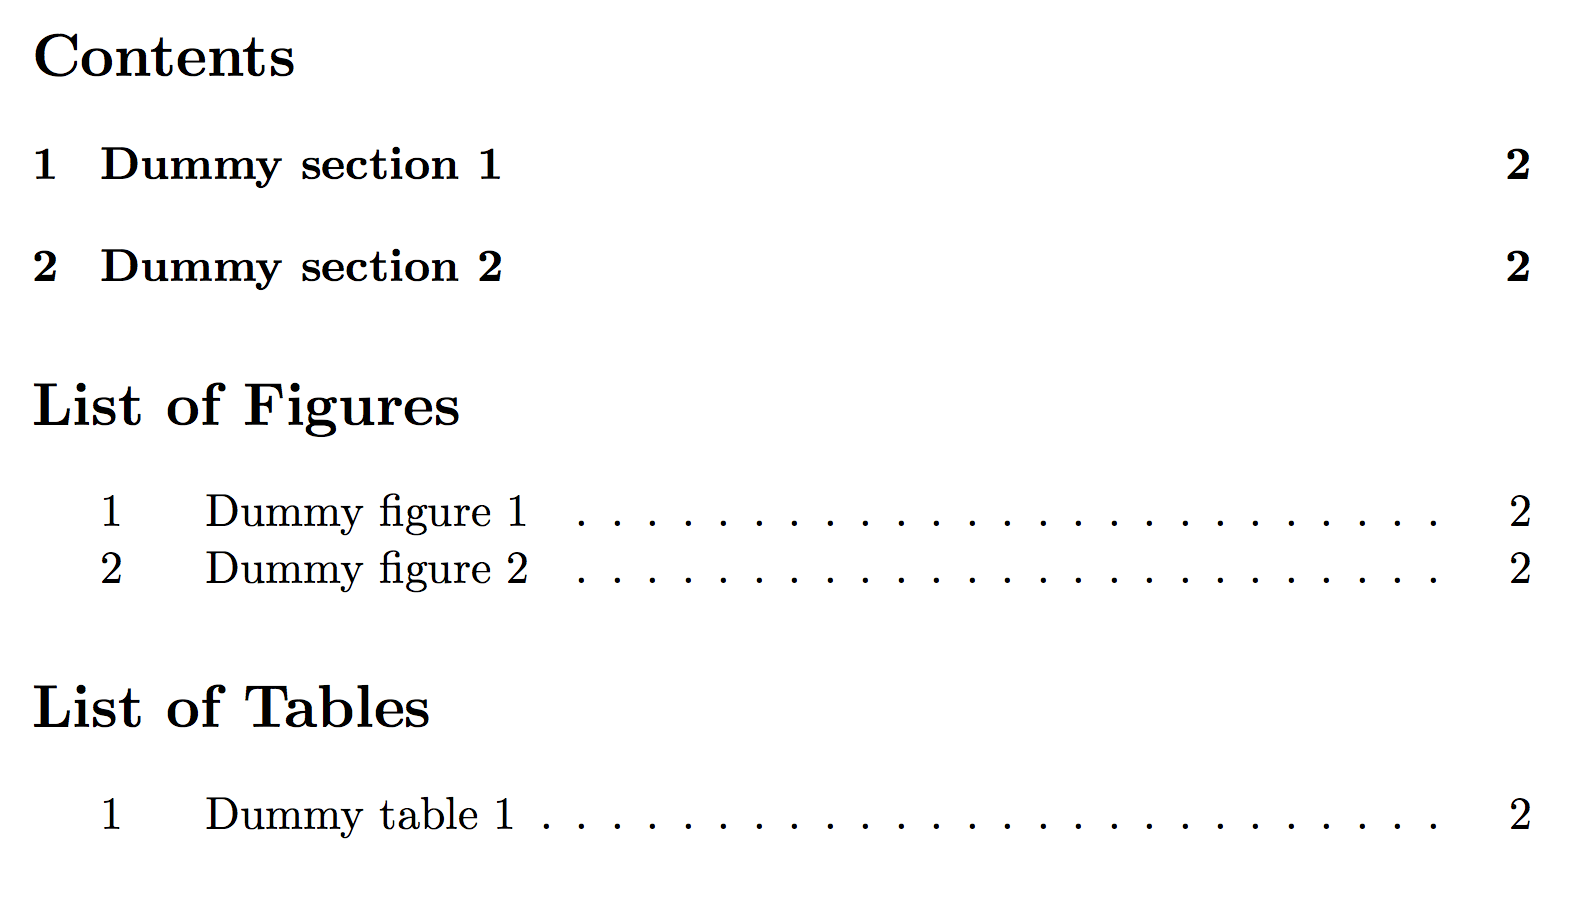 LaTeX table of contents, list of figures/tables and some